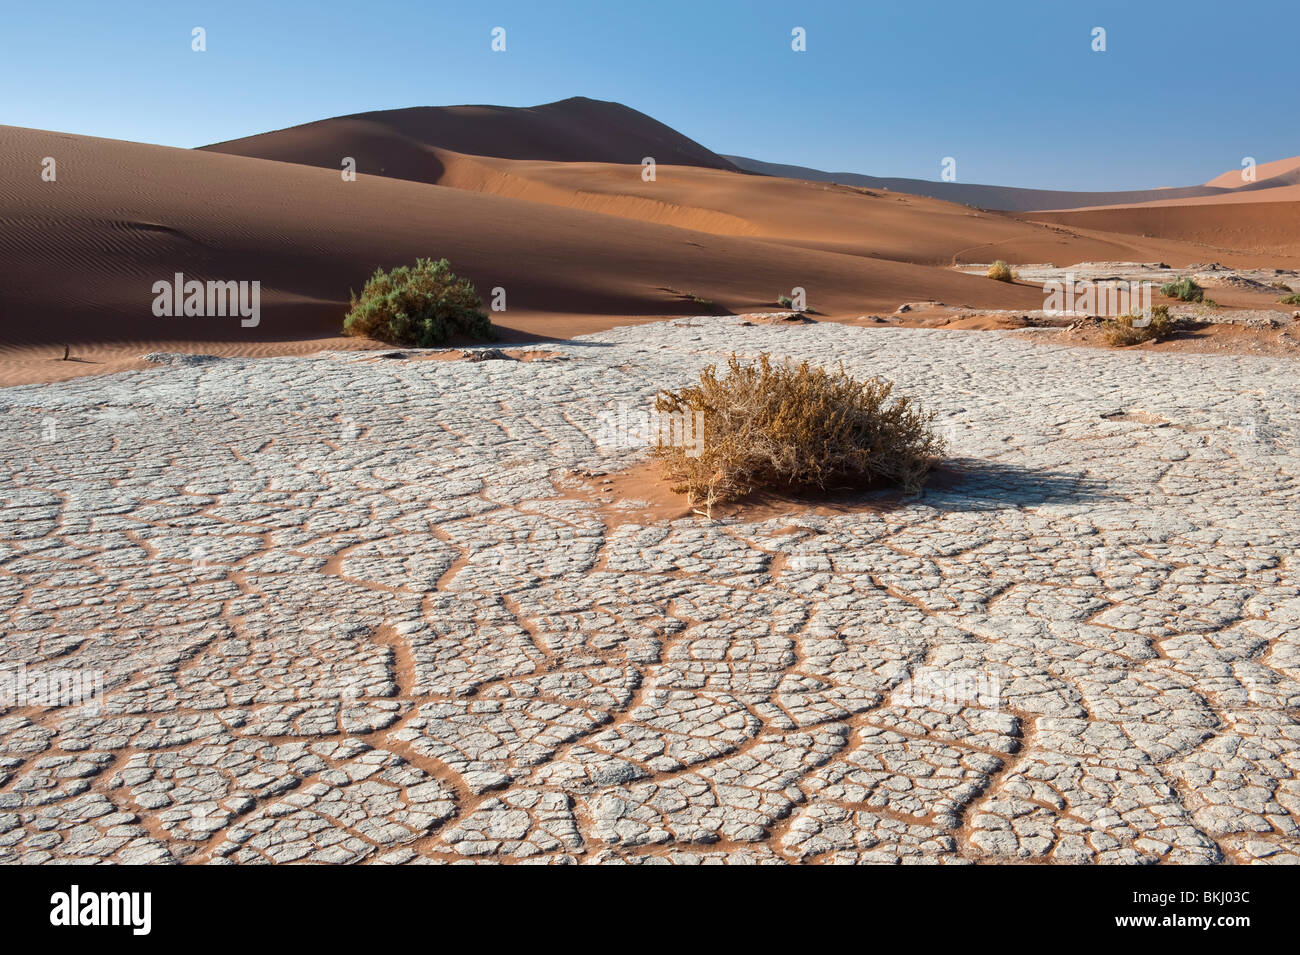 Dry River Bed Leaving a Craquelure Effect in the White Clay in Sossusvlei, Namibia Stock Photo